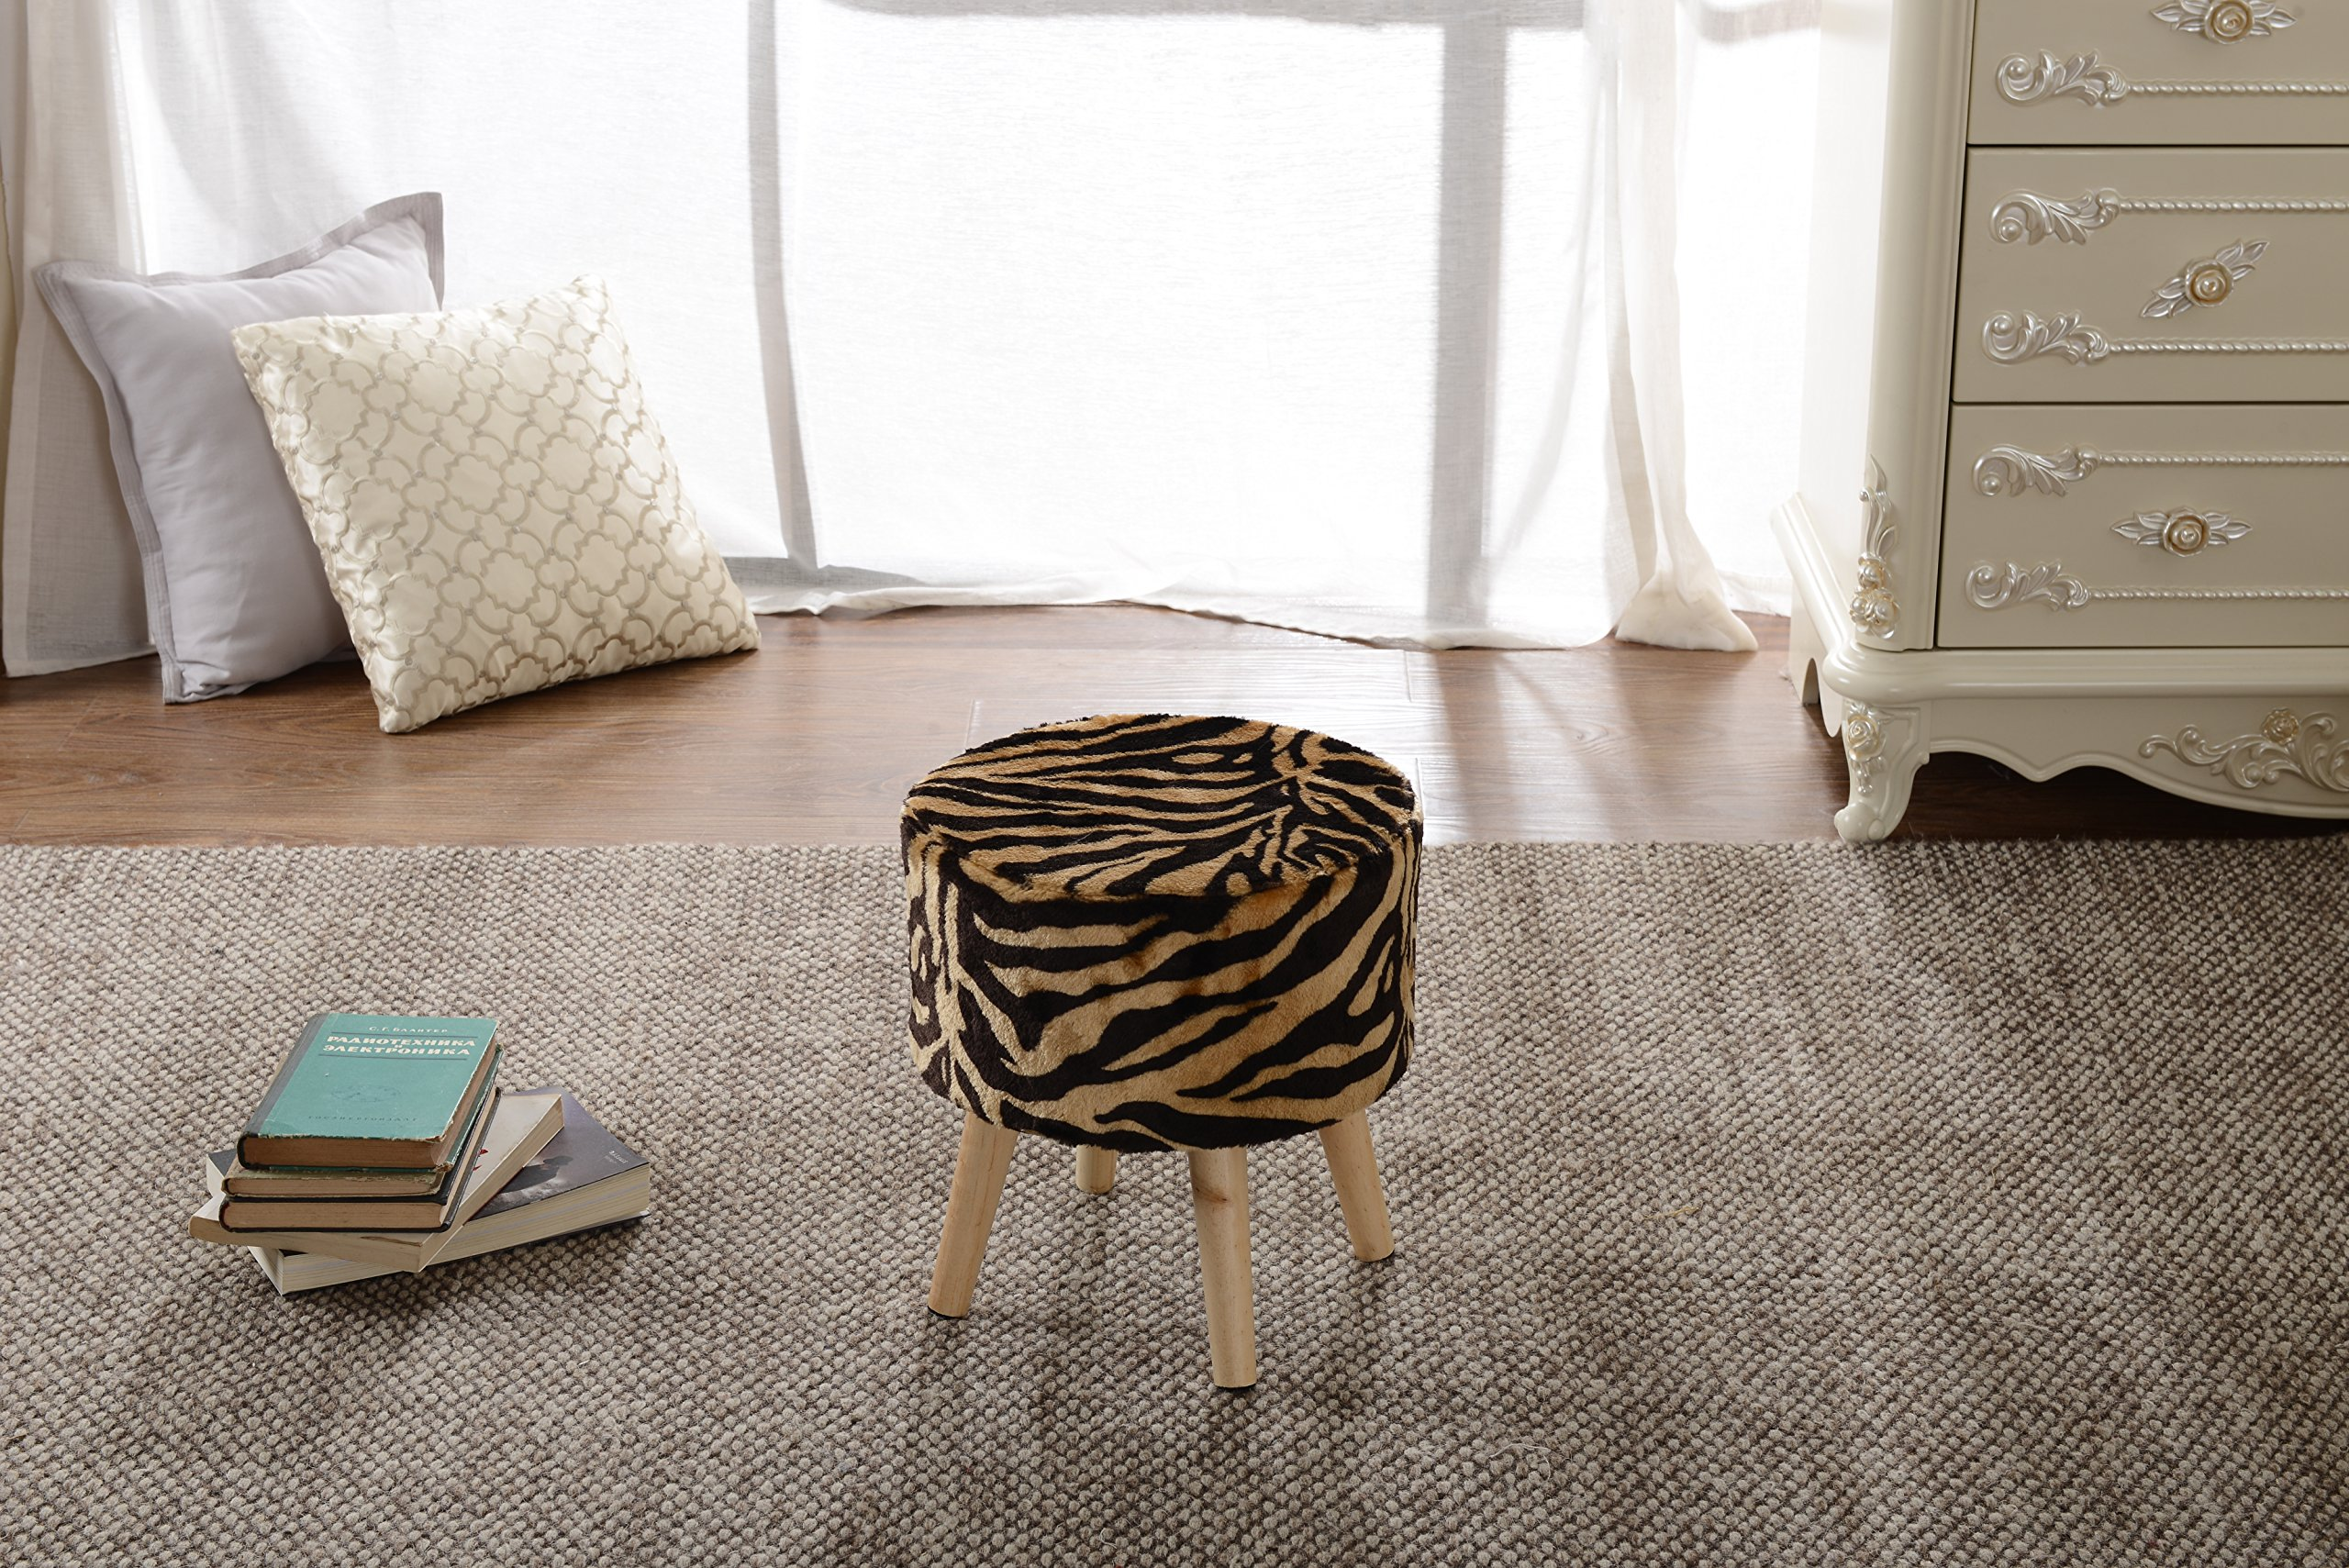 Cheer Collection 13'' Round Ottoman | Super Soft Decorative Tiger Print Faux Fur Foot Stool with Wood Legs by Cheer Collection (Image #5)